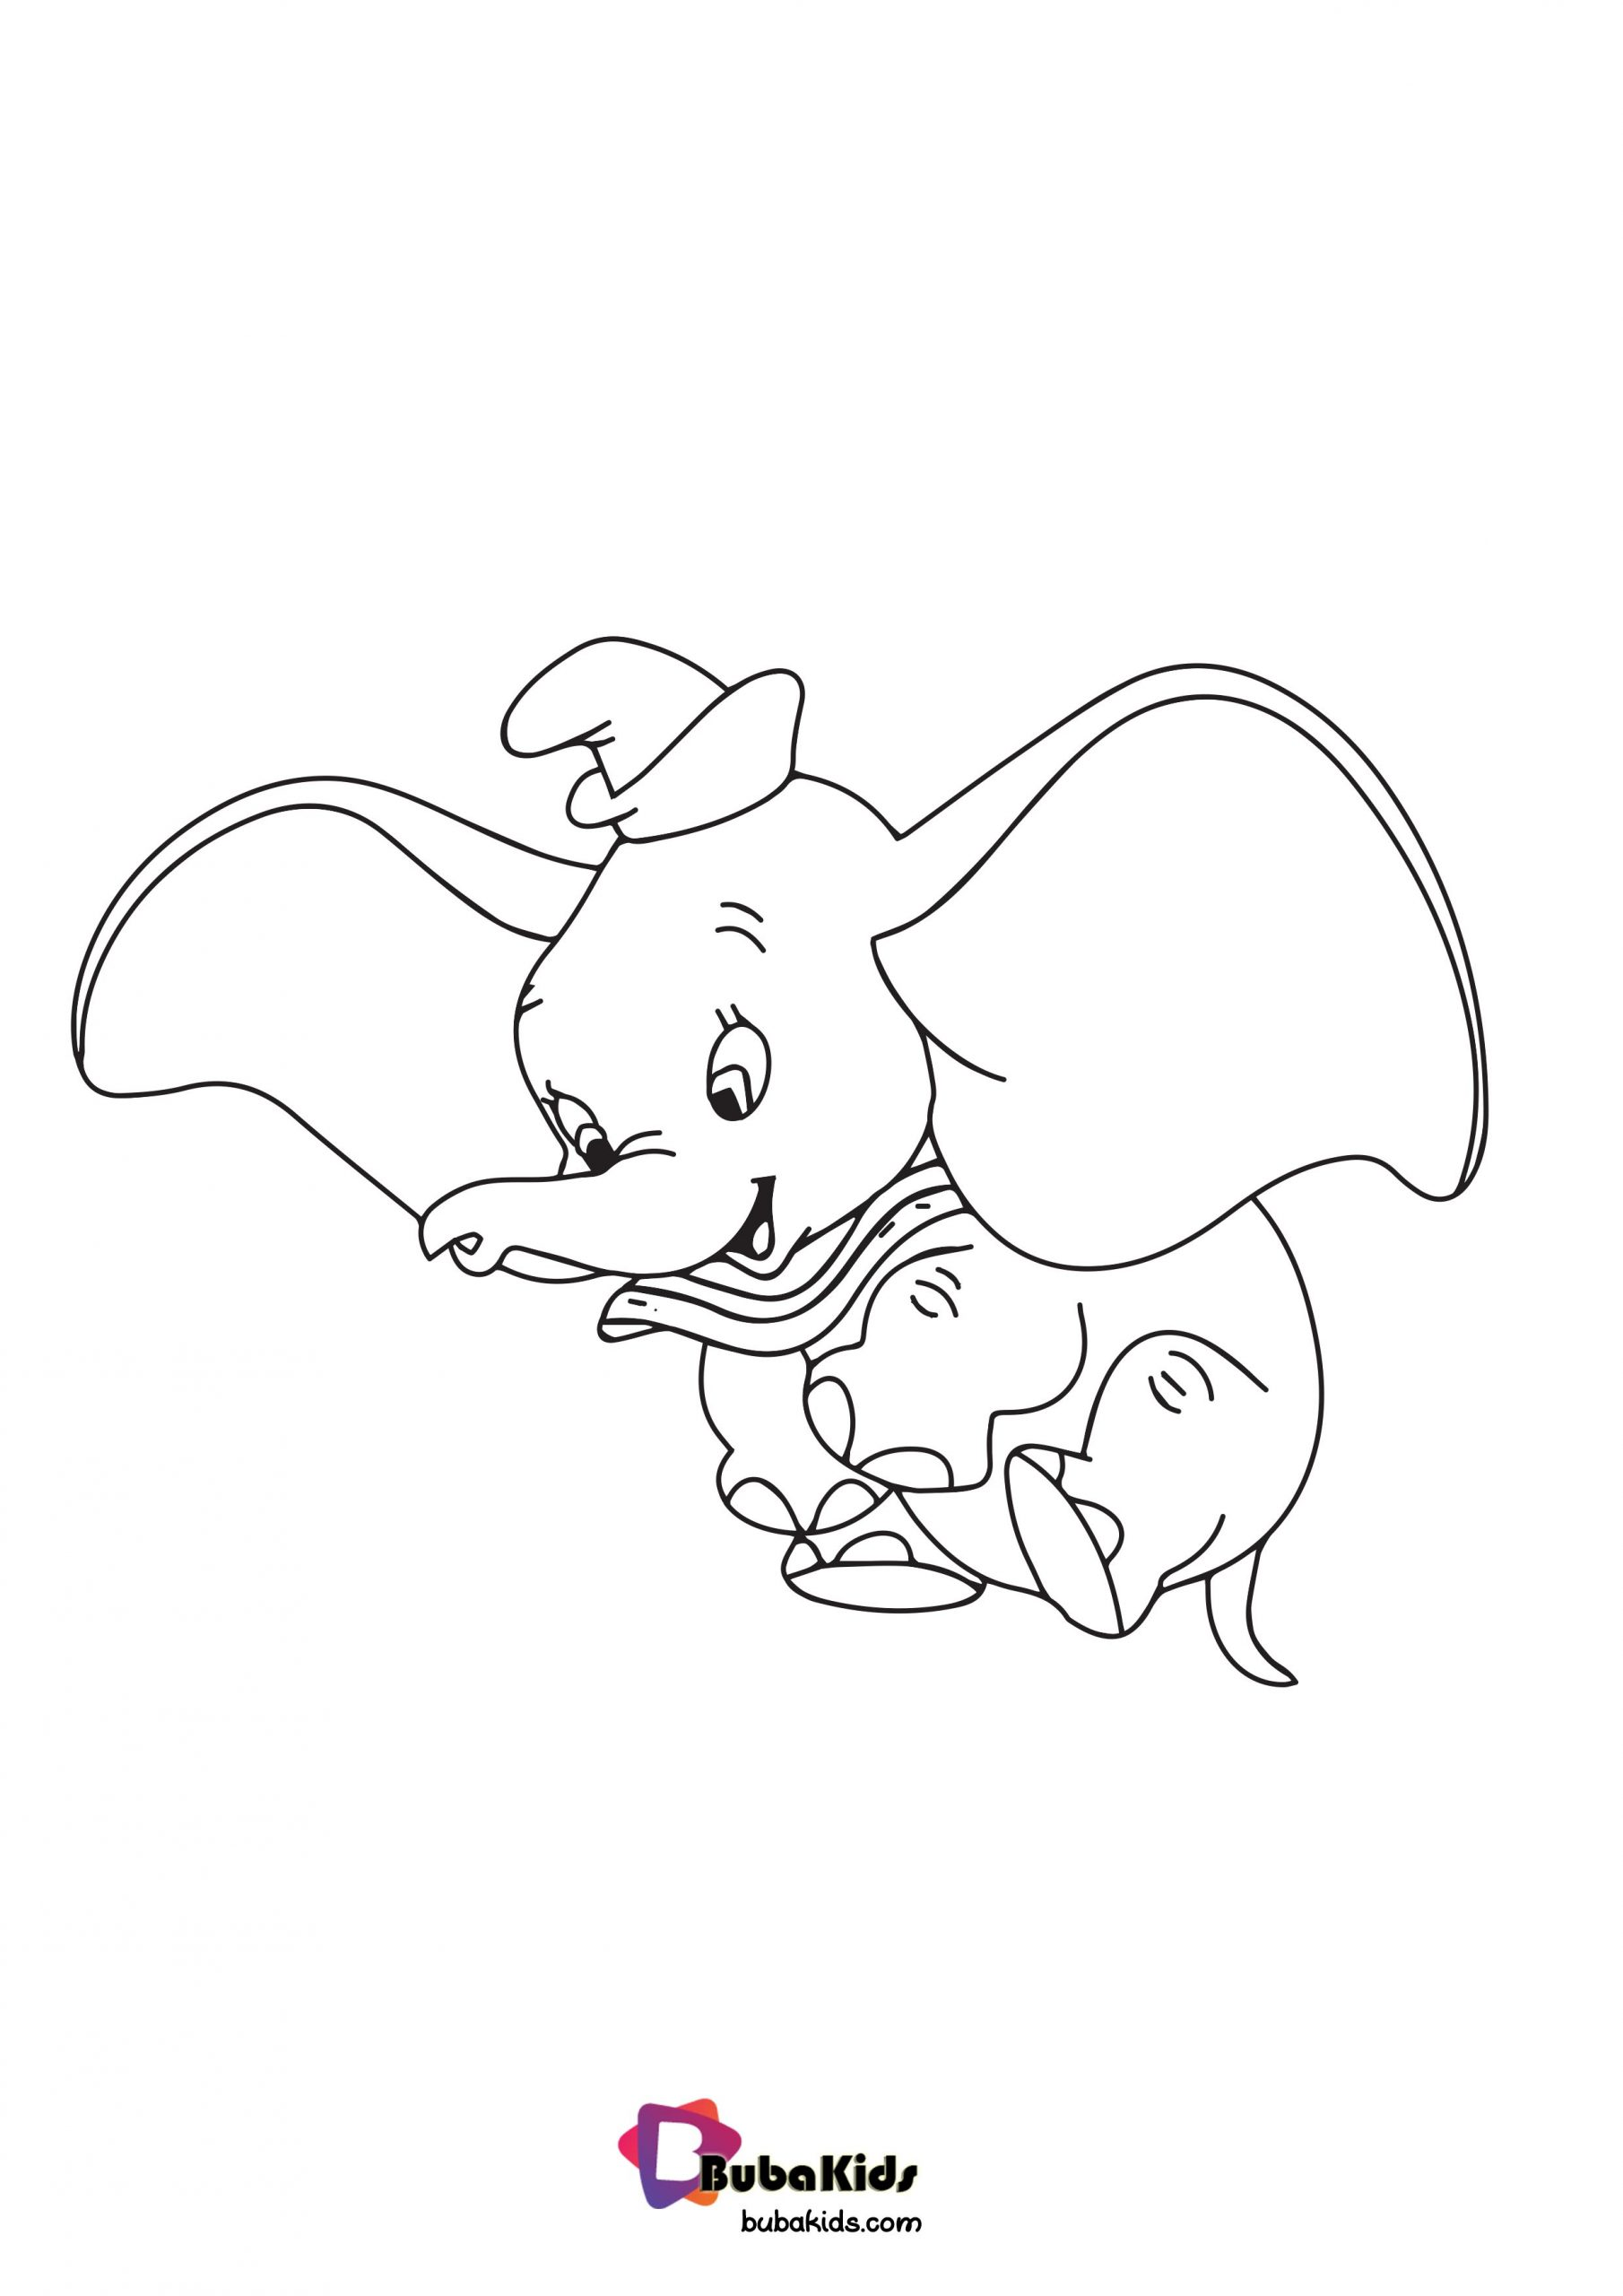 cute dumbo coloring page  bubakids